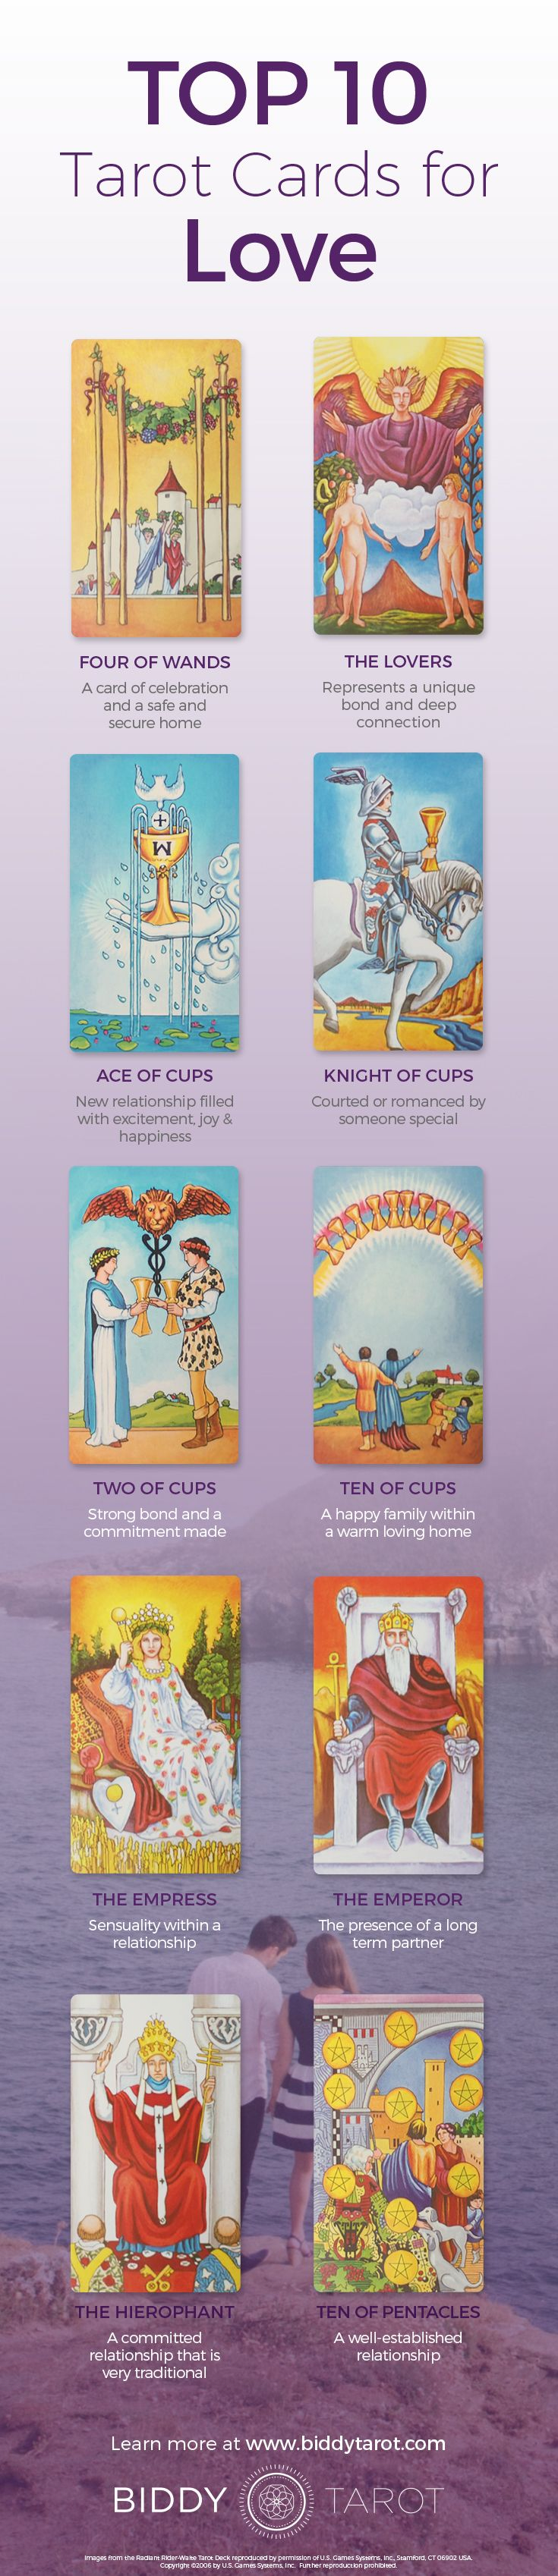 Everyone wants someone to #love. When these #Tarot cards appear in a reading, cupid isn't far behind. Expect positive changes in love and #relationships in the near future. Download your free copy of my Top 10 Tarot Cards for love, finances, career, life purpose and so much more at https://www.biddytarot.com/top-ten-cards-ebook/ It's my gift to you!